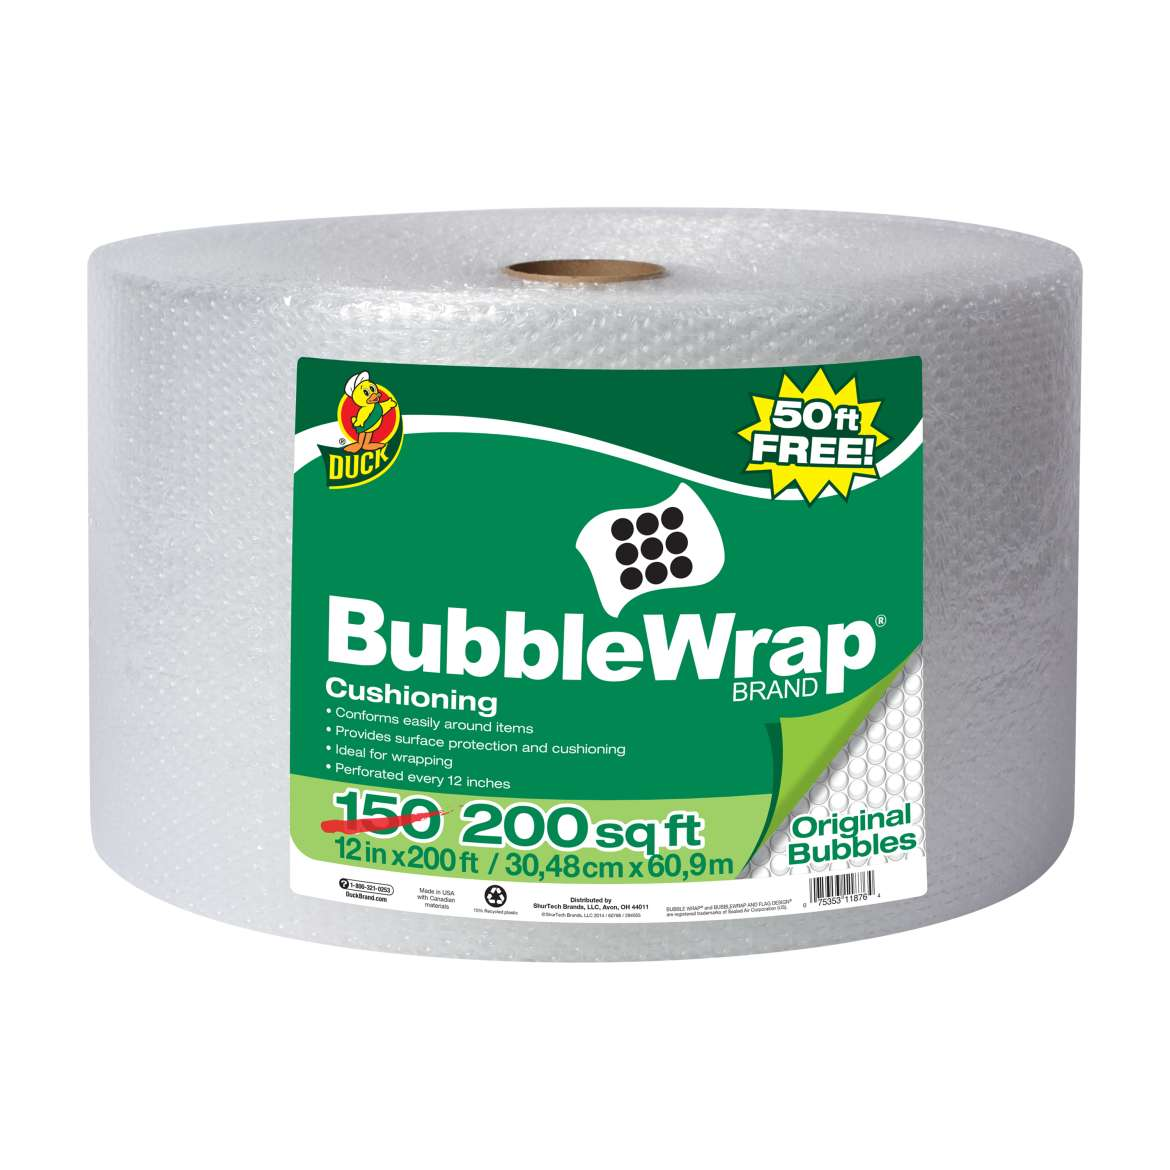 "Duck Brand 12"" x 150' Bubble Wrap Cushioning BONUS Roll, 50' Free"